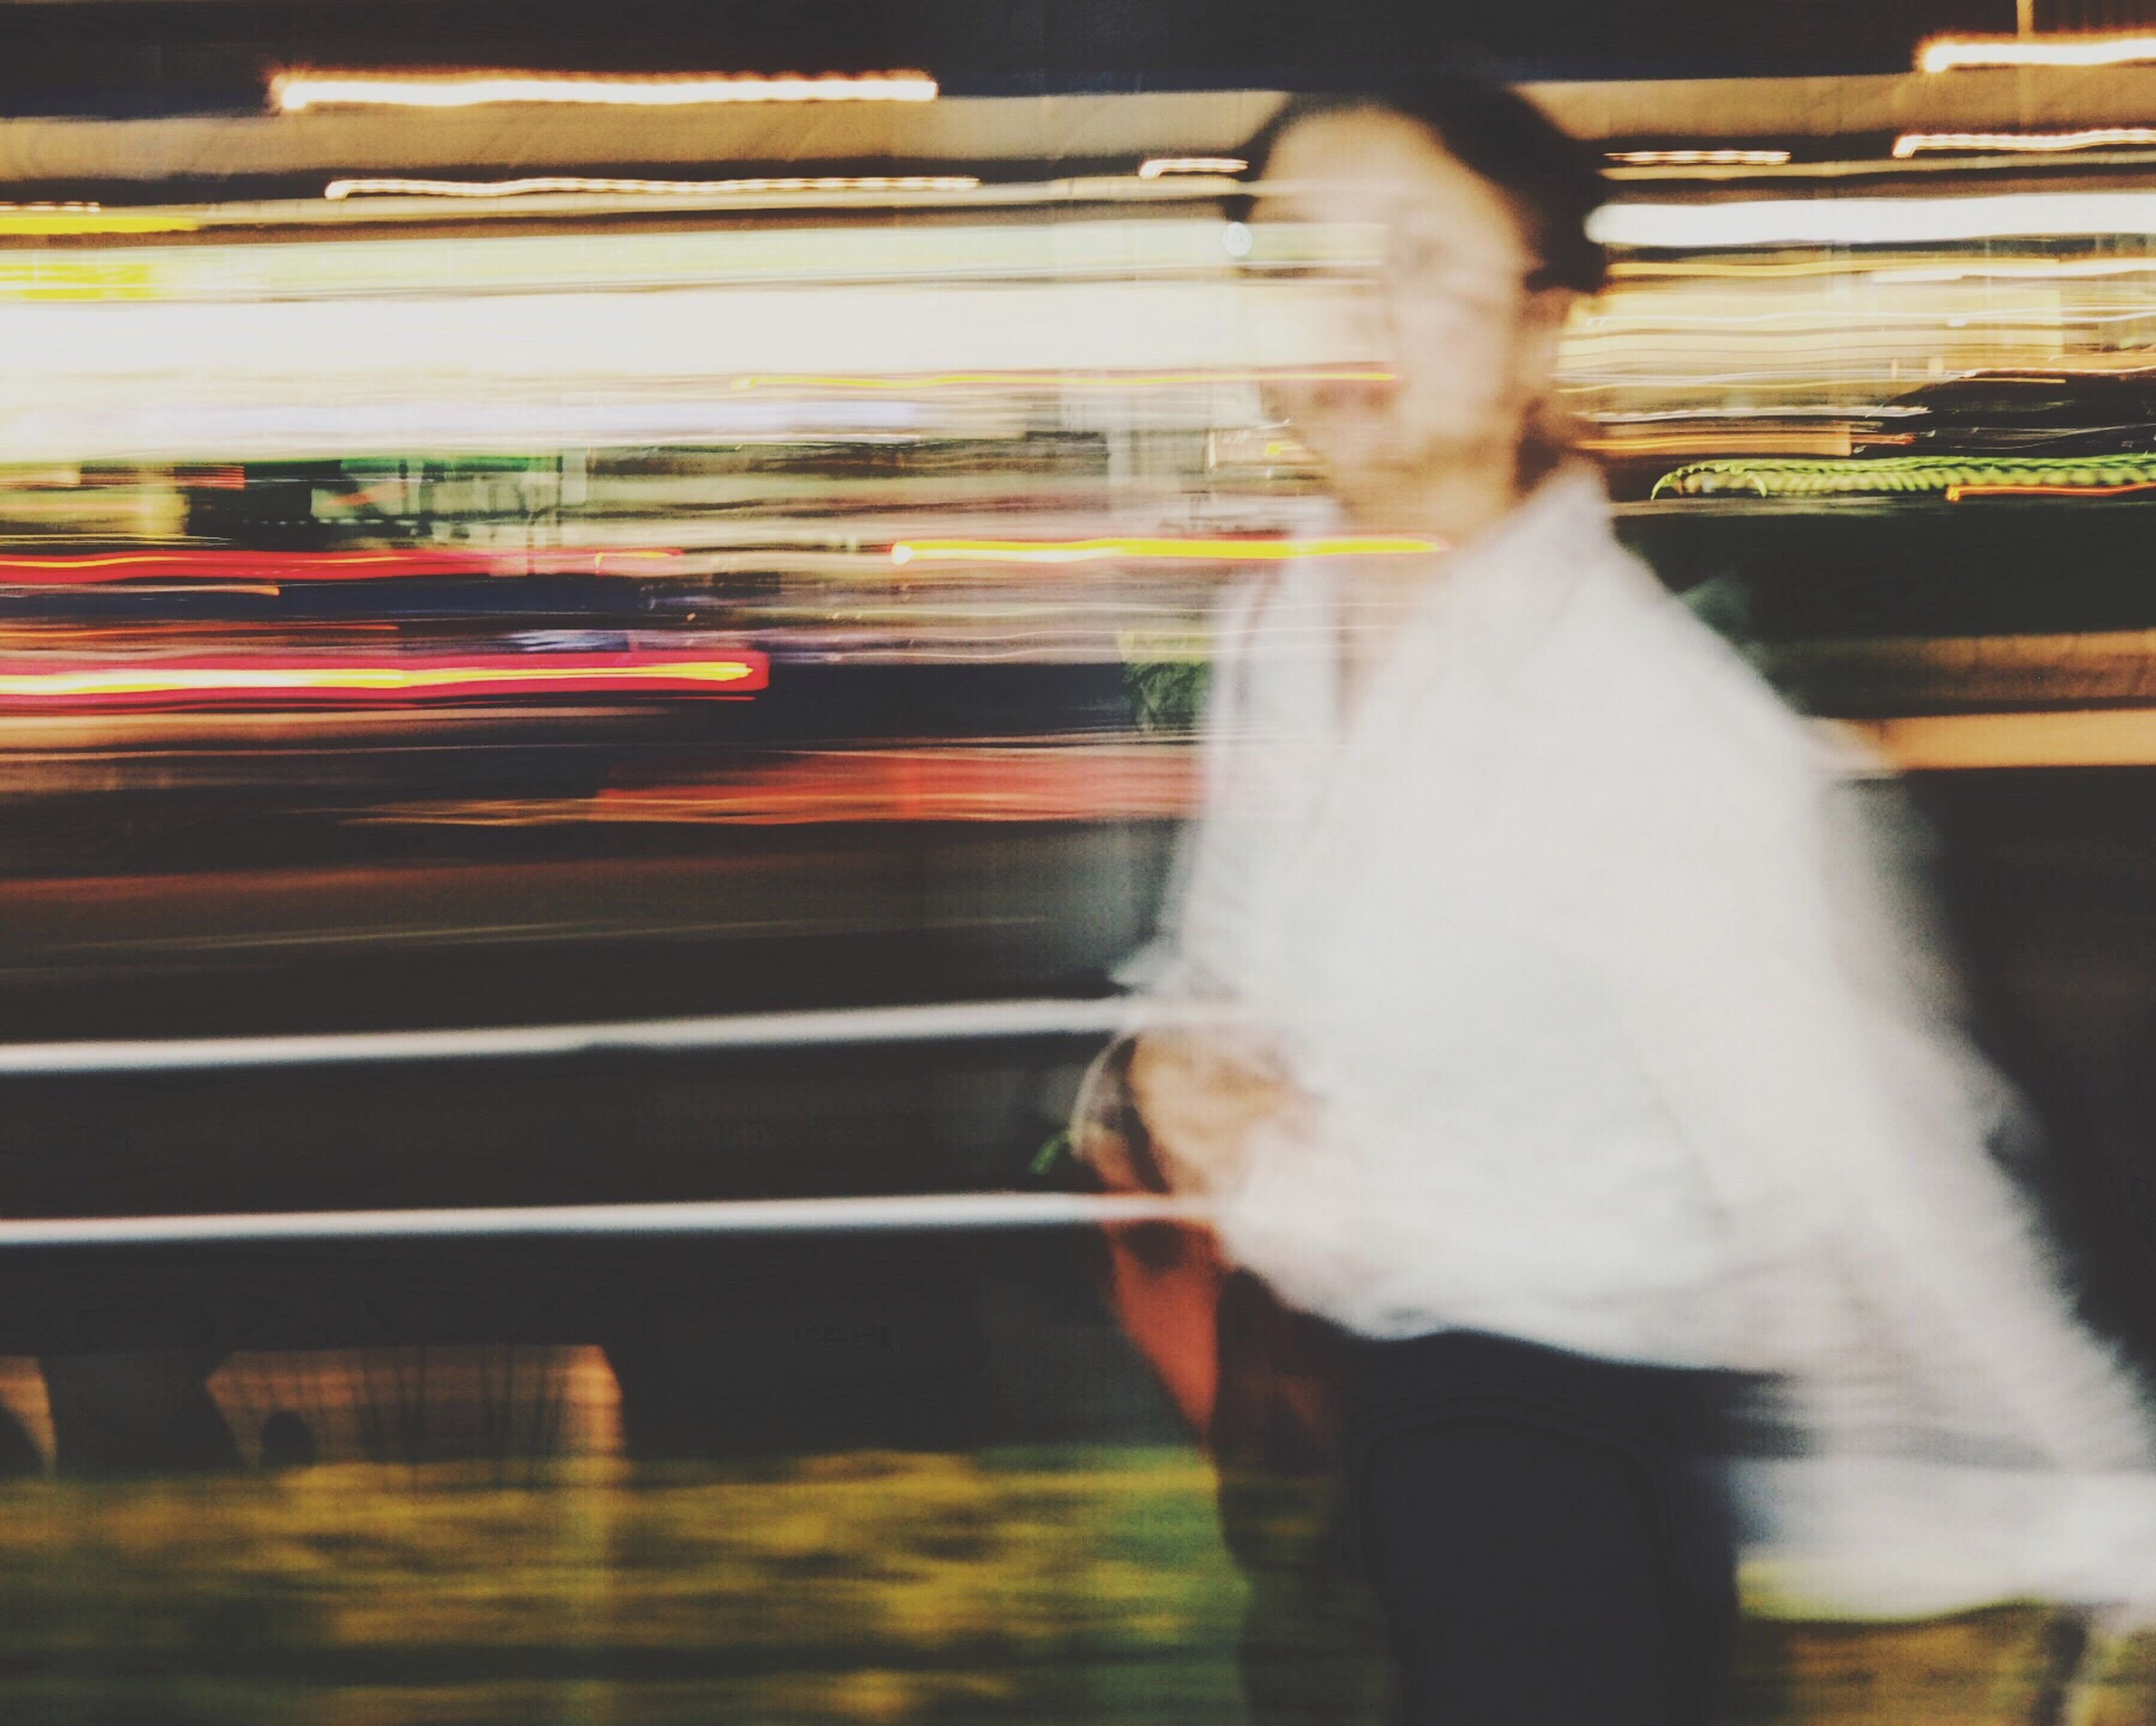 blurred motion, motion, speed, long exposure, transportation, real people, walking, one person, public transportation, rear view, indoors, day, people